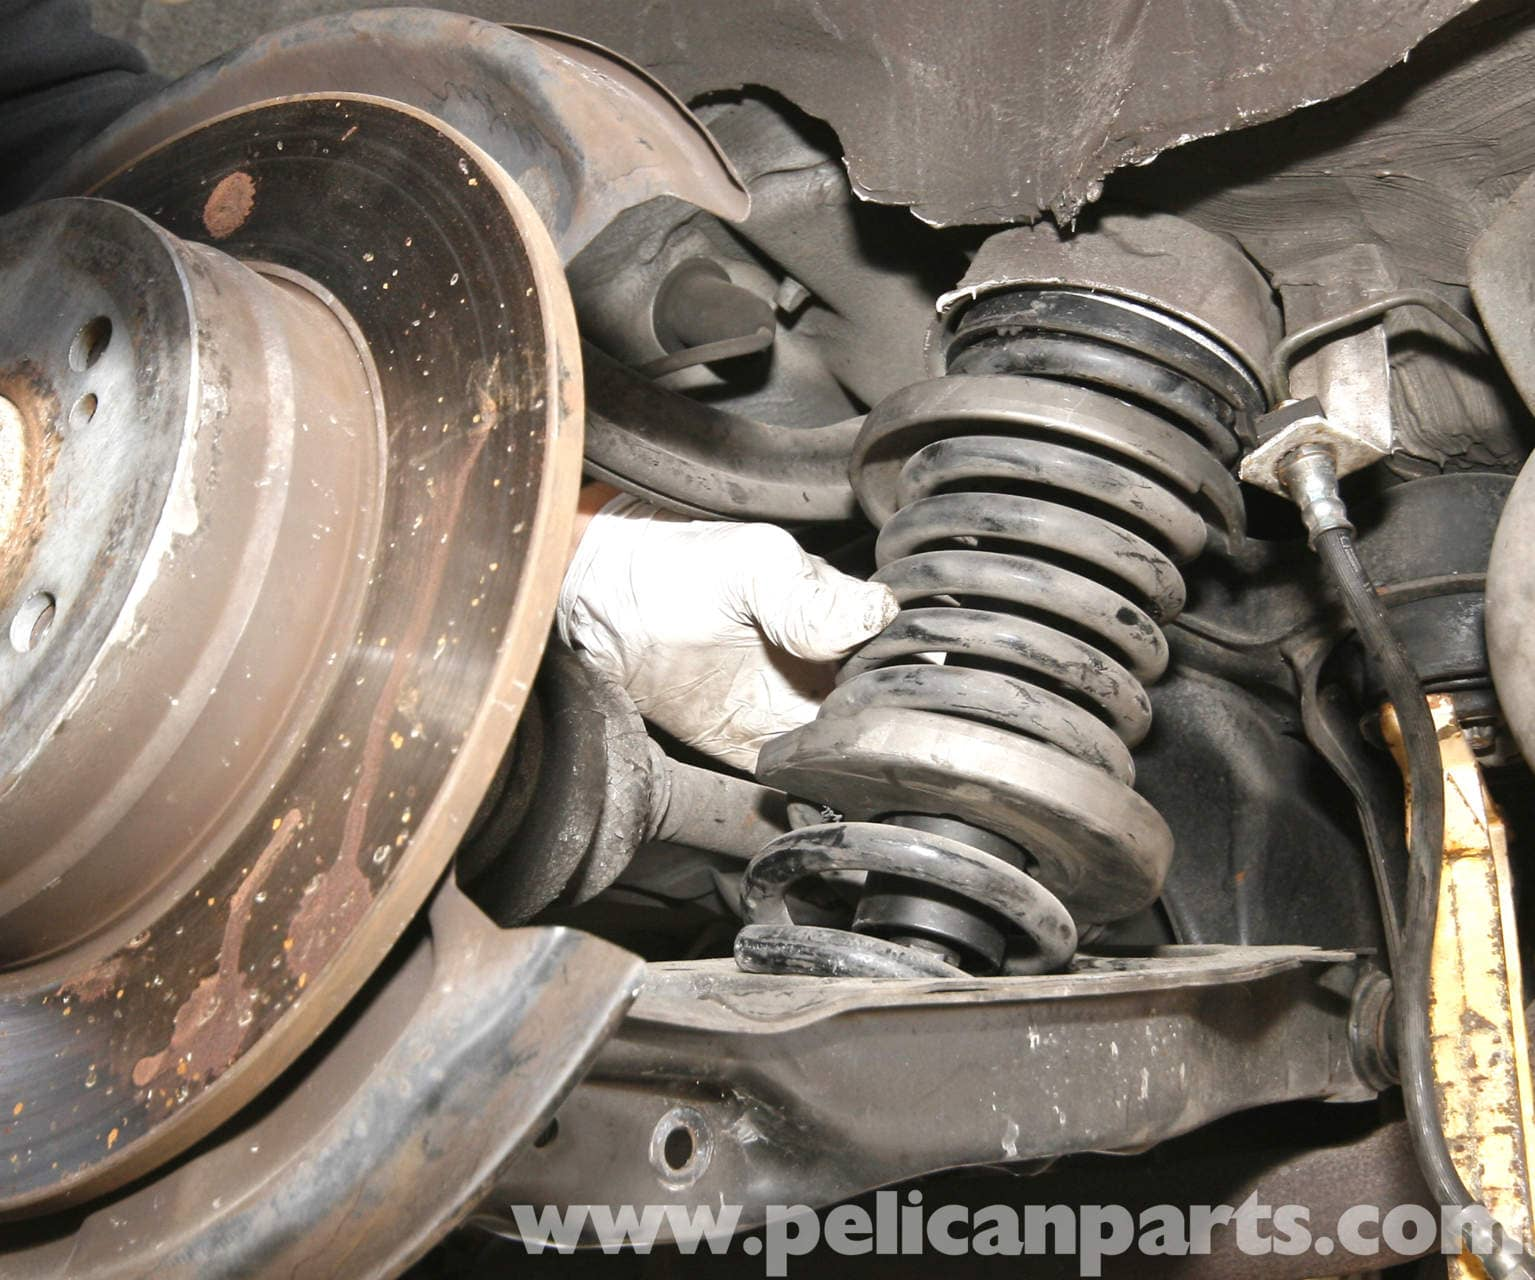 Mercedes Benz Slk 230 Rear Shock And Spring Replacement